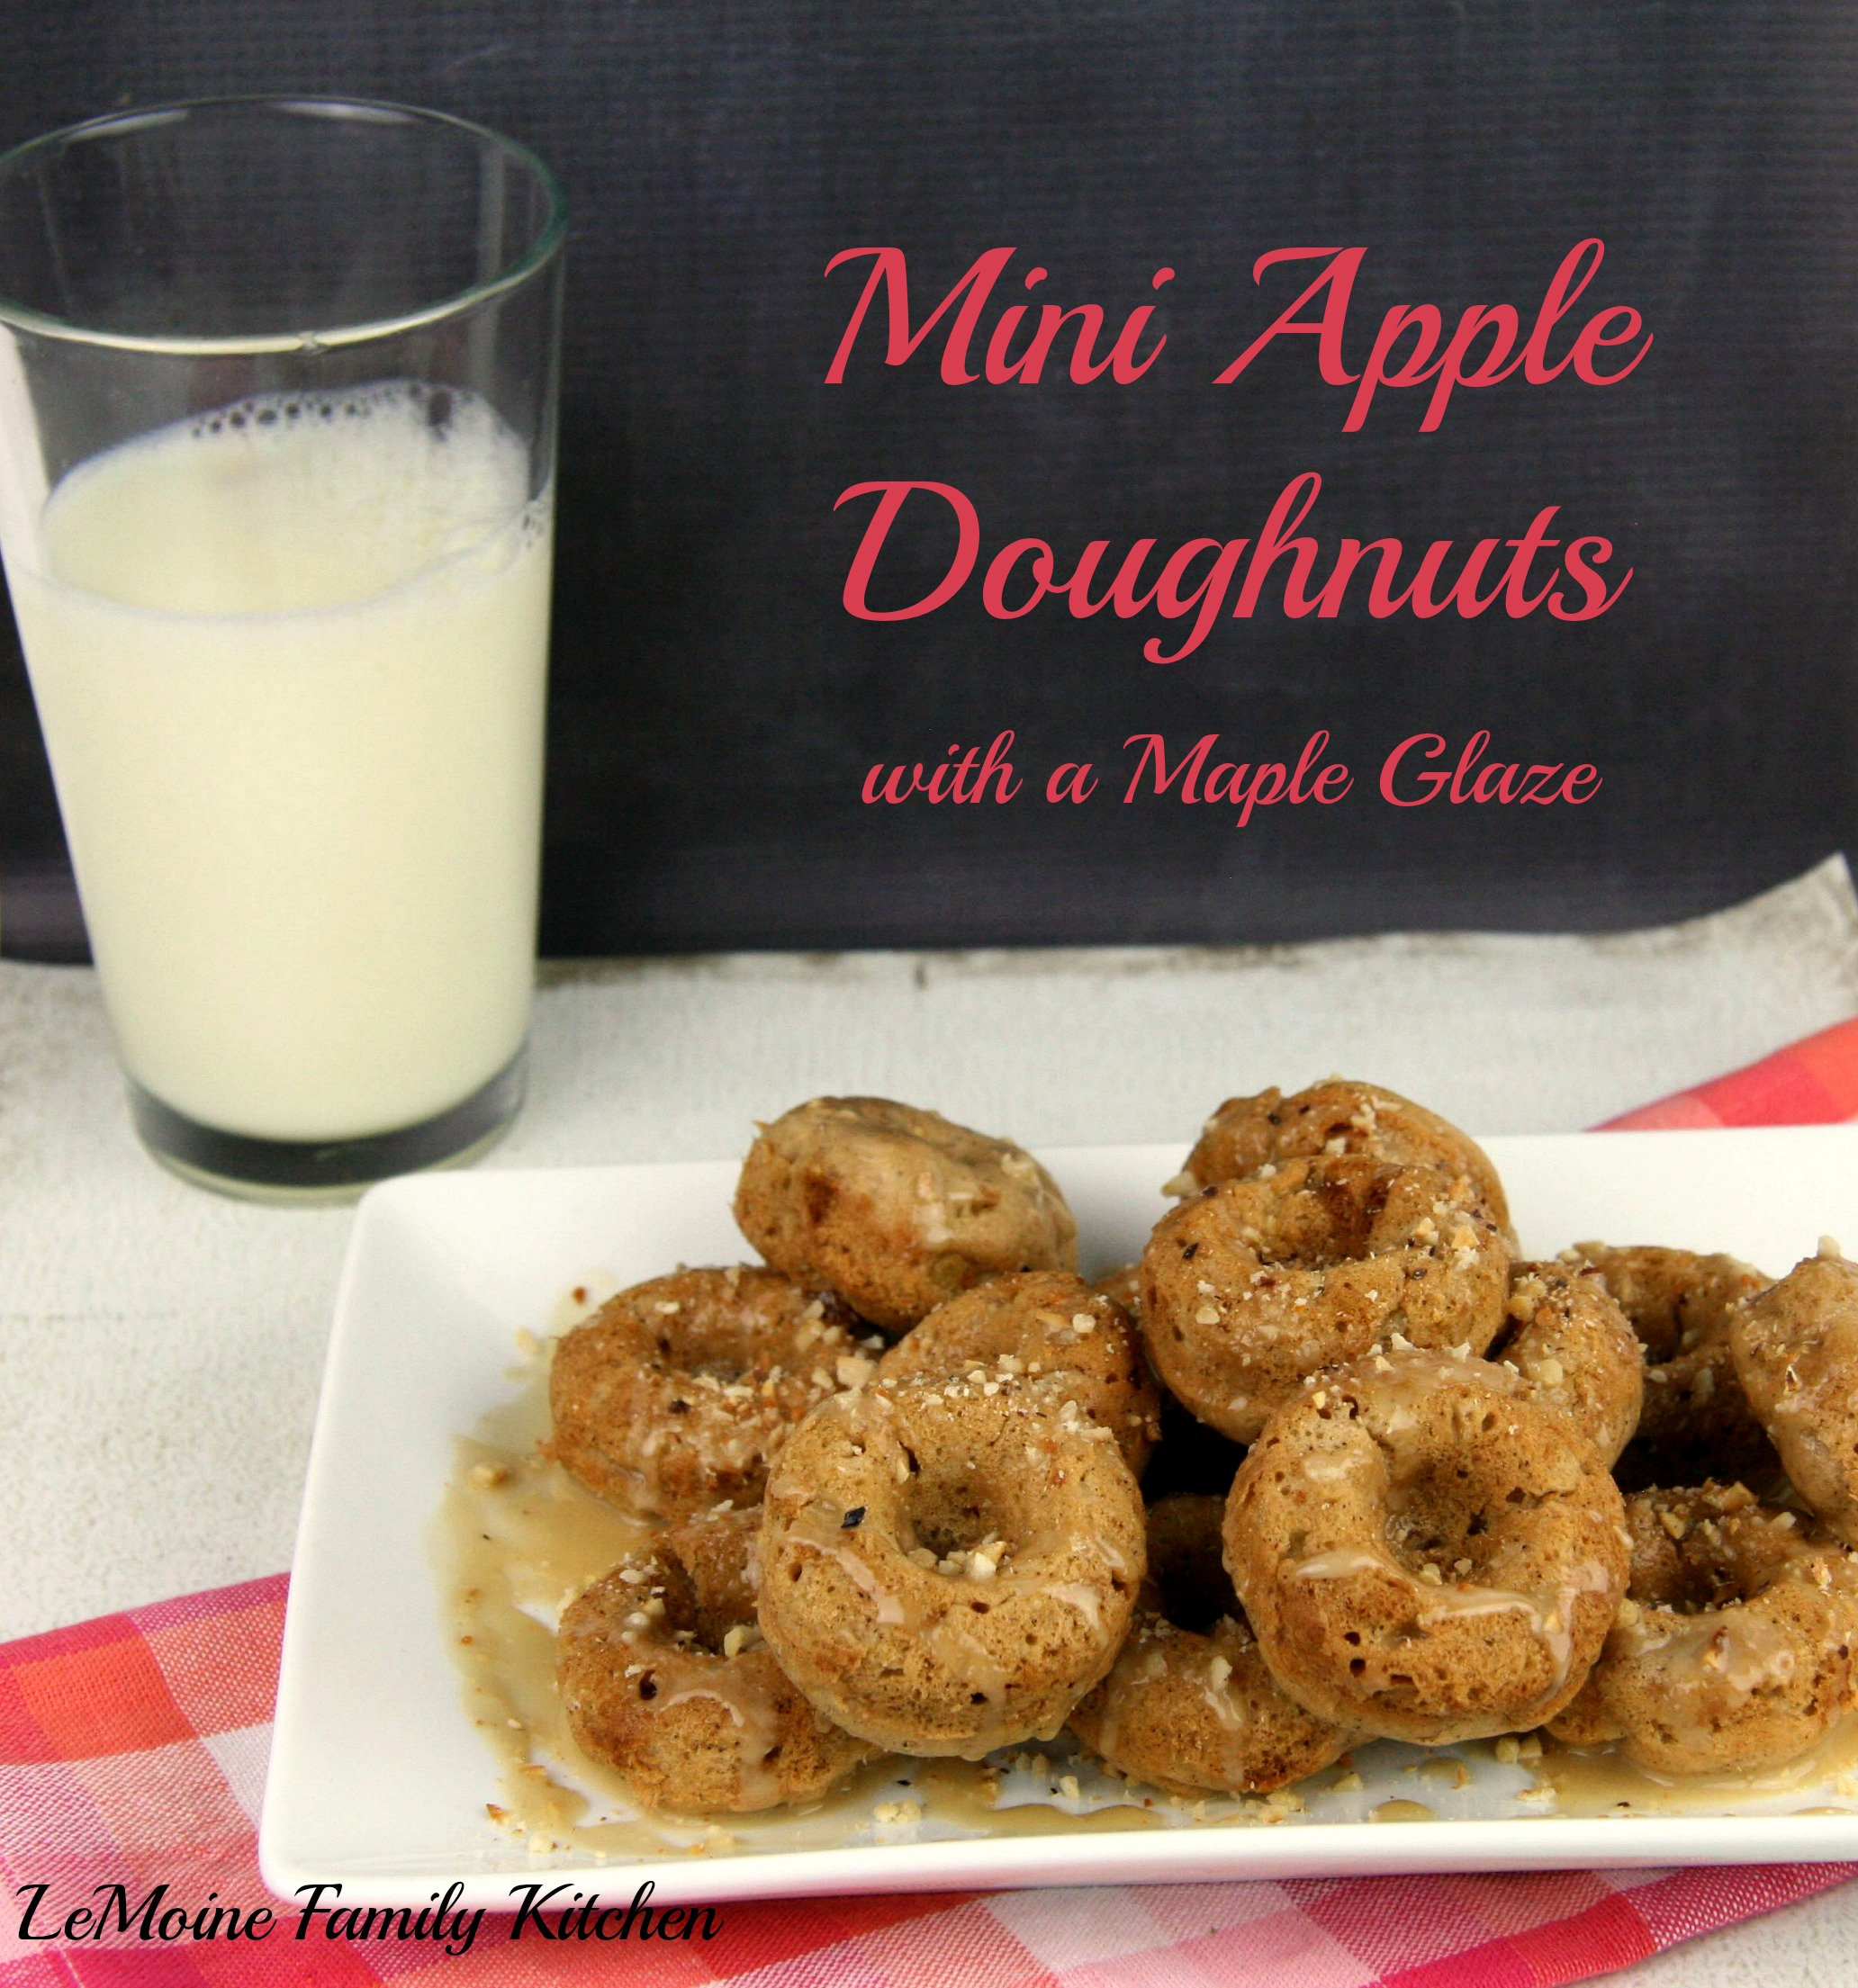 ... Cooking Tips, and Food News | Mini Apple Doughnuts with a Maple Glaze